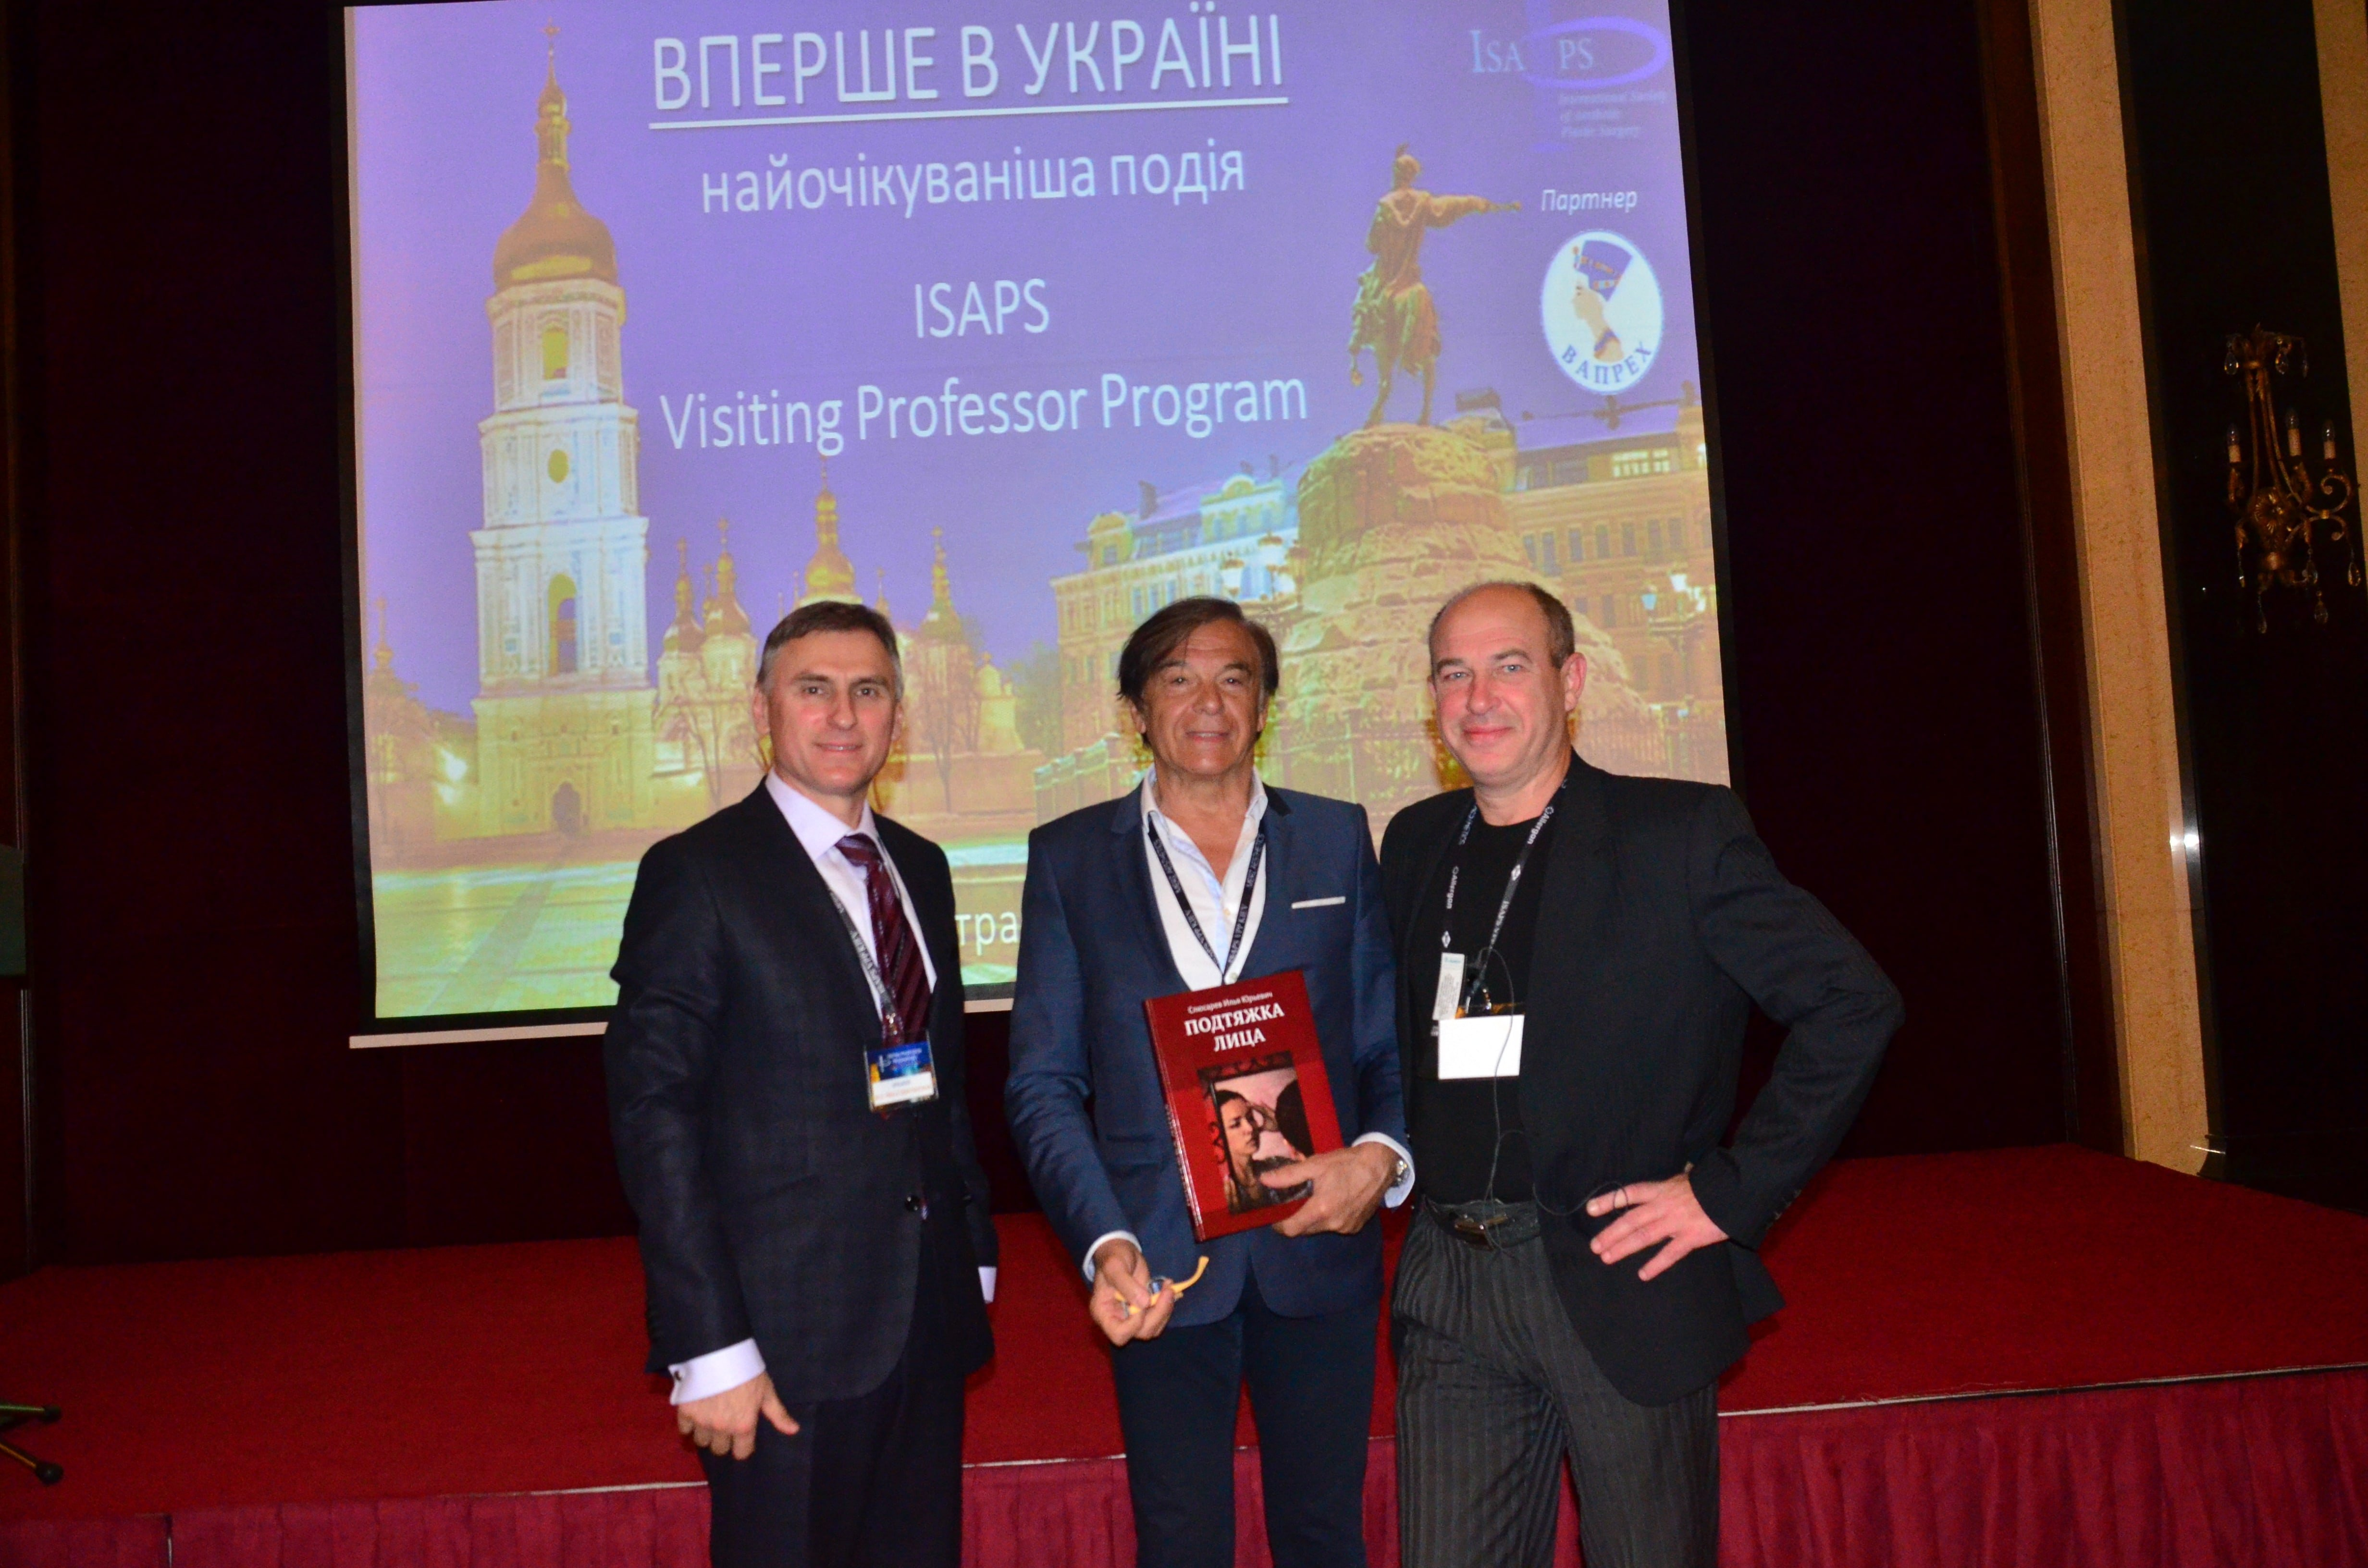 world-wide known STARS OF PLASTIC SURGERY IN UKRAINE photo 3